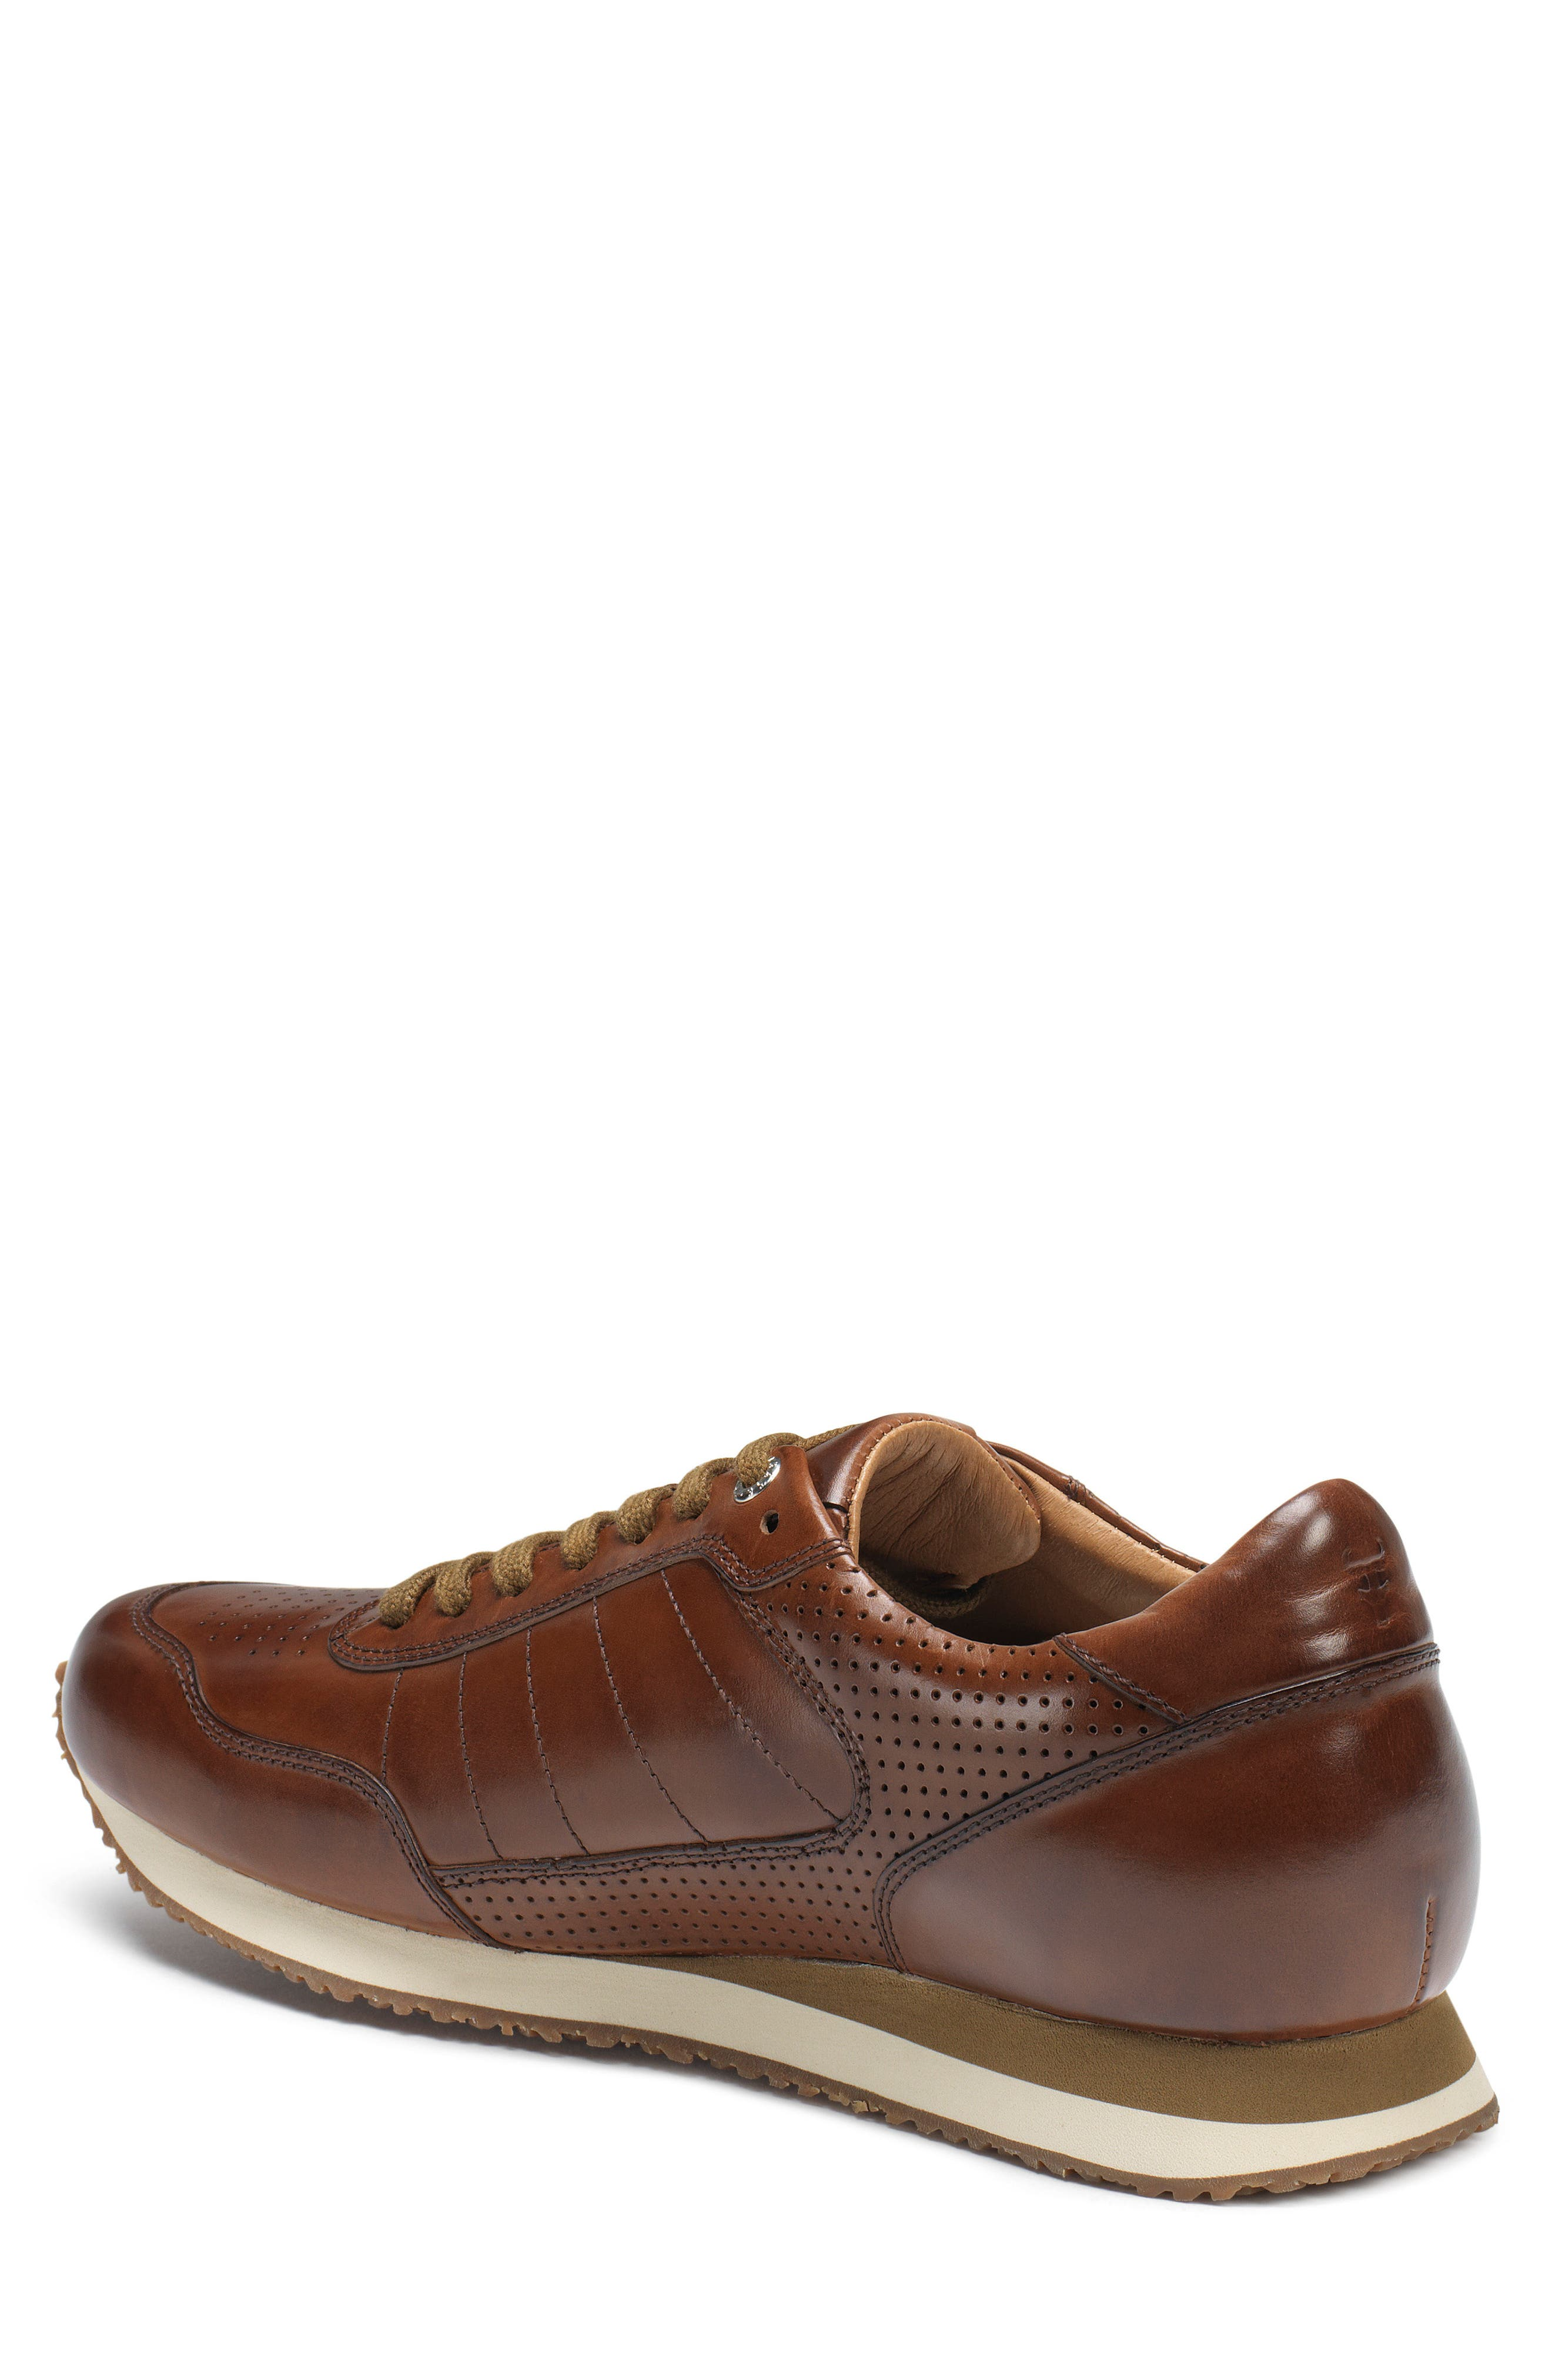 Aiden Sneaker,                             Alternate thumbnail 2, color,                             Brown Leather